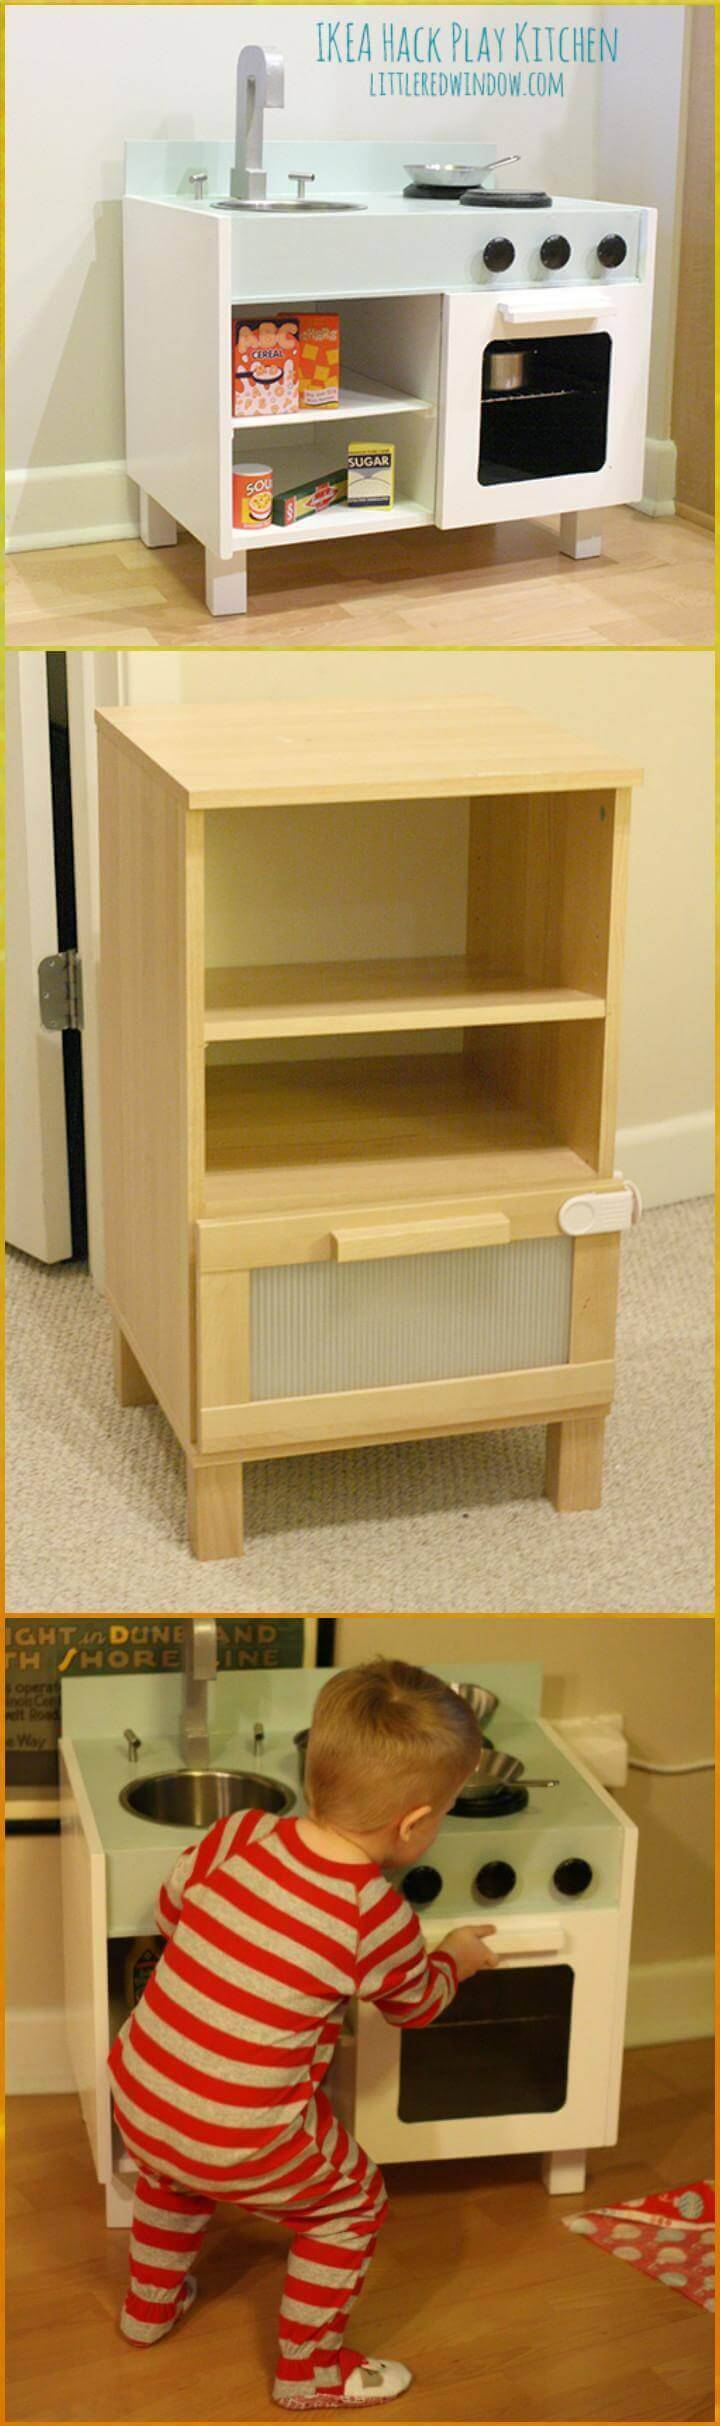 DIY super beautiful Ikea hack play kitchen